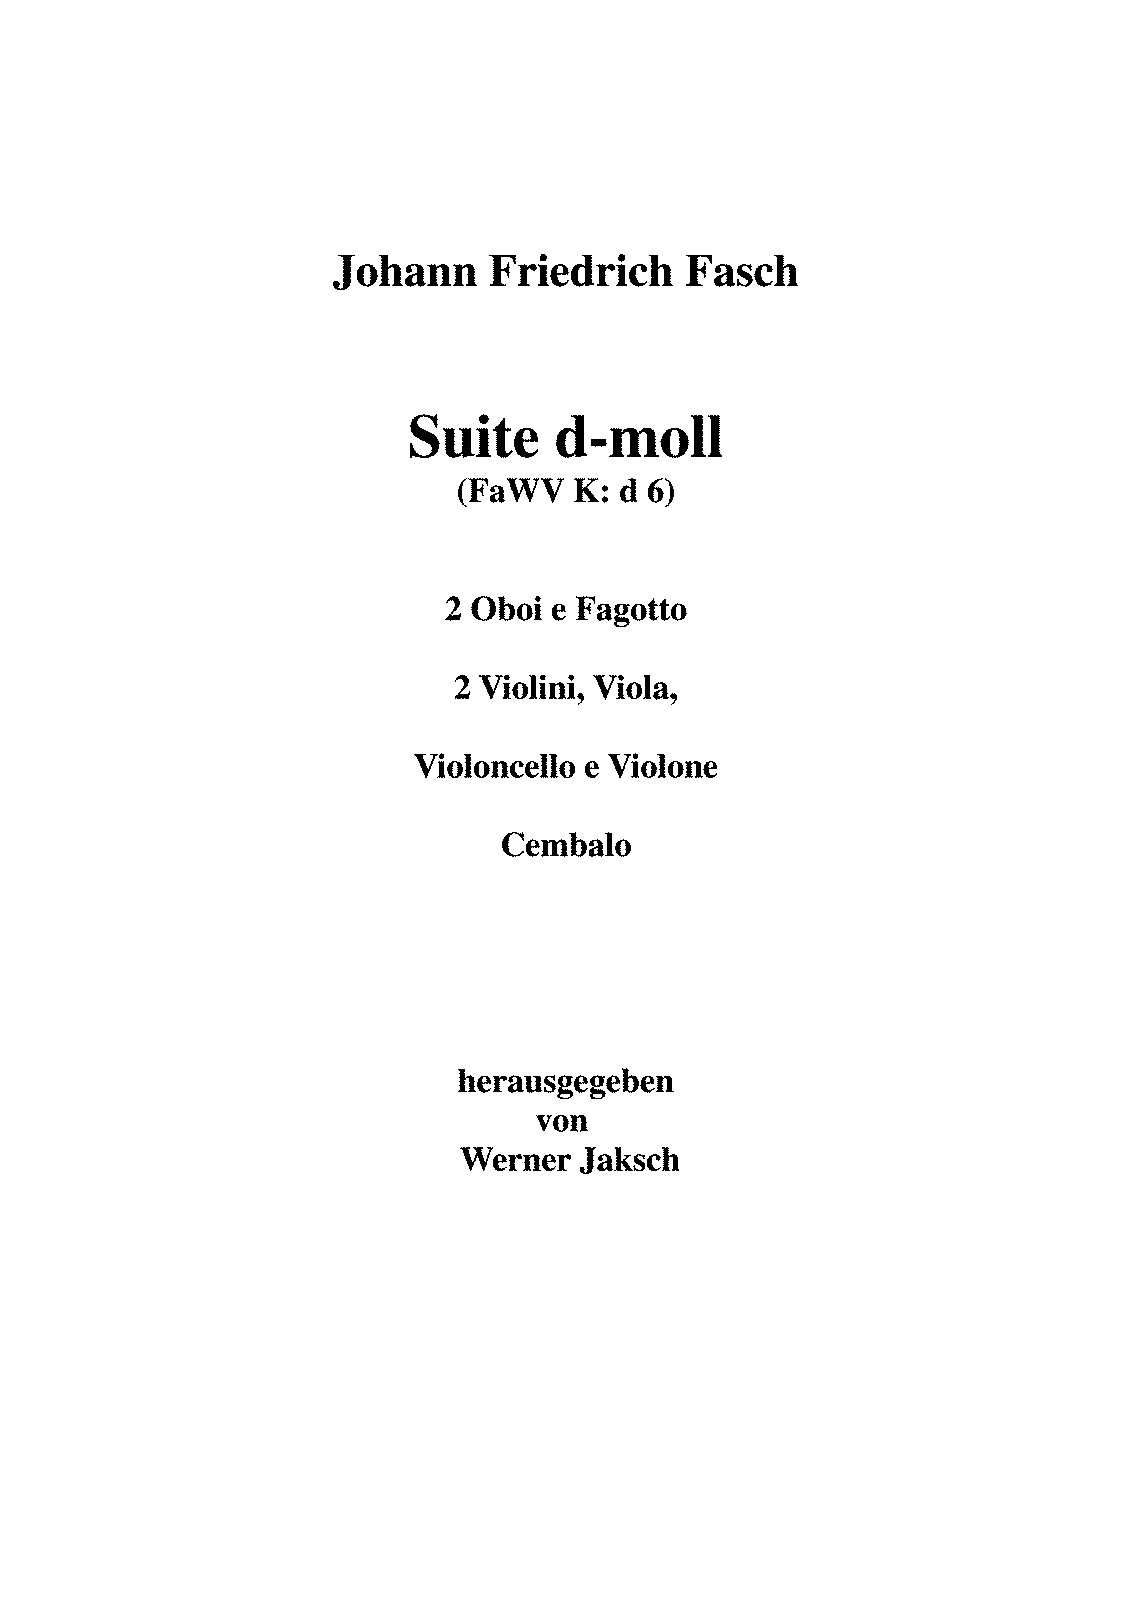 PMLP500964-fasch d6 part.pdf